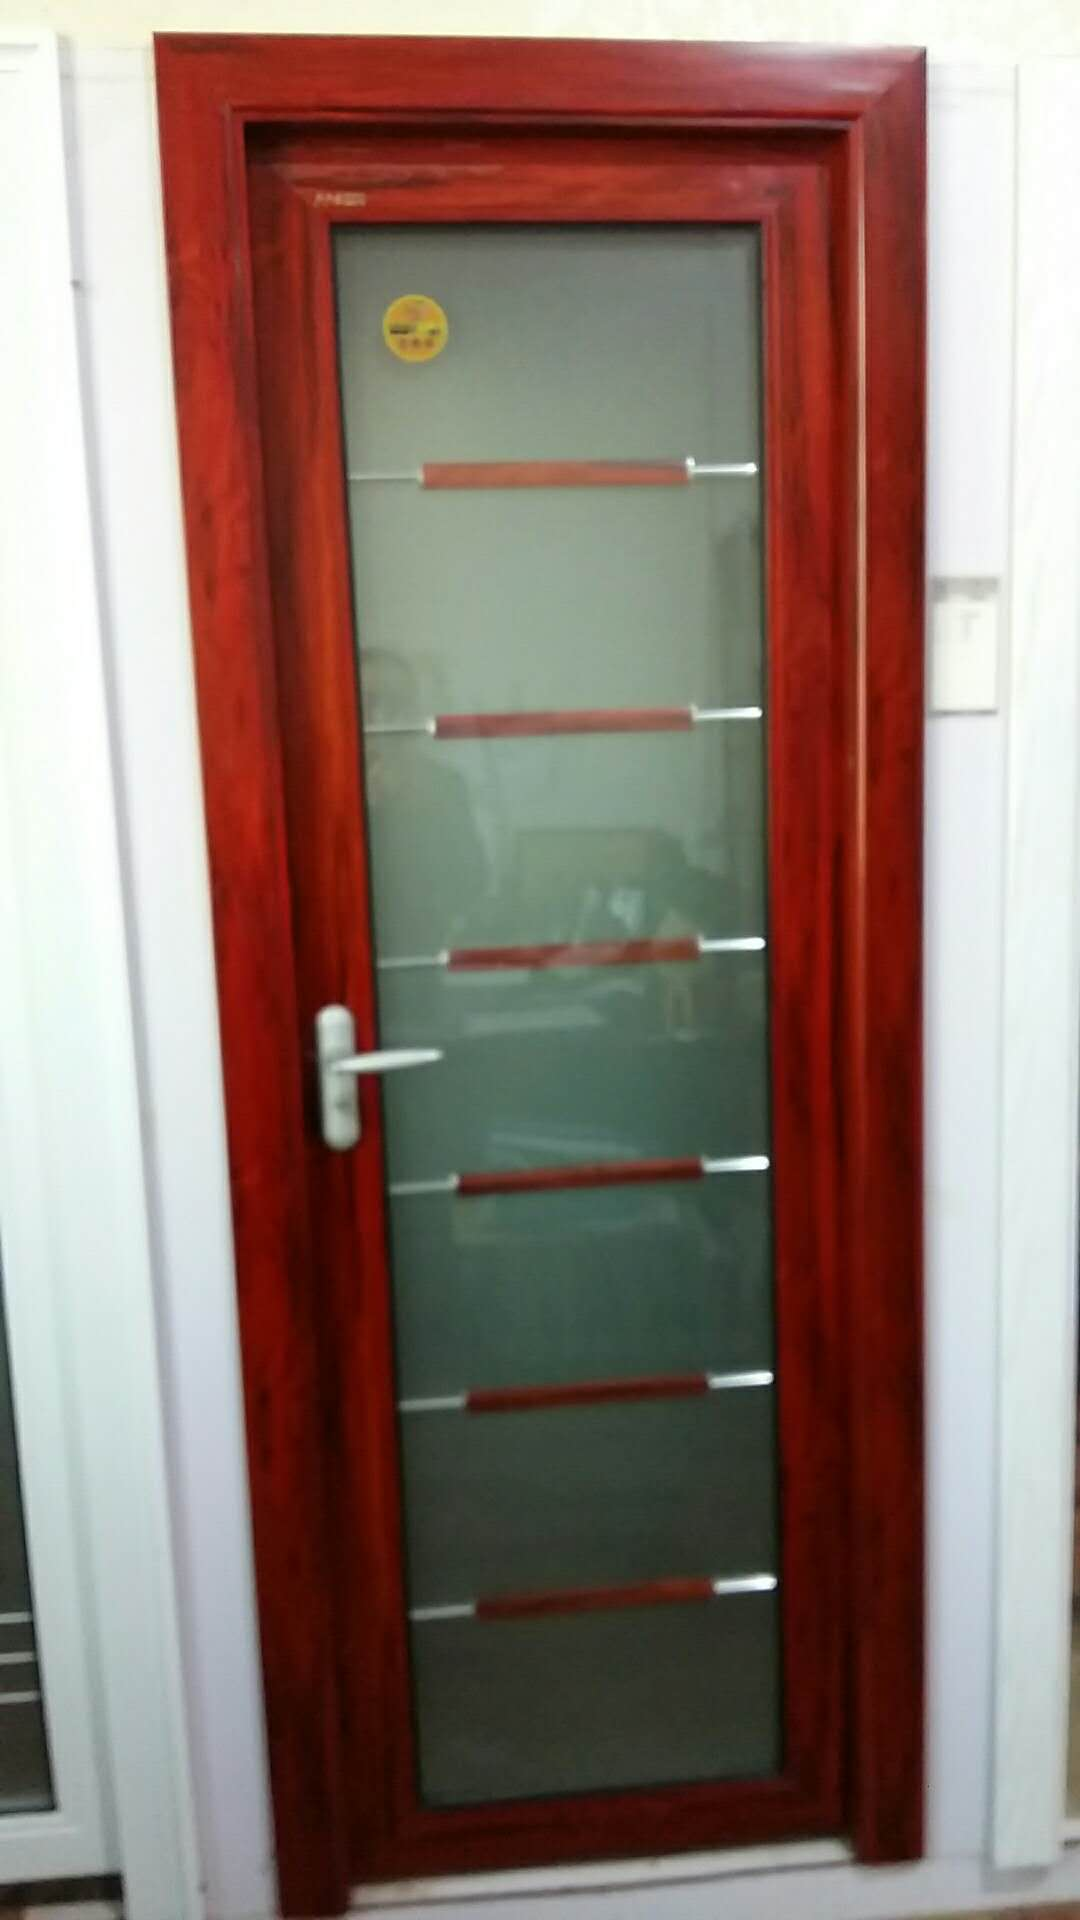 Stainless steel bathroom door price_E 路 网